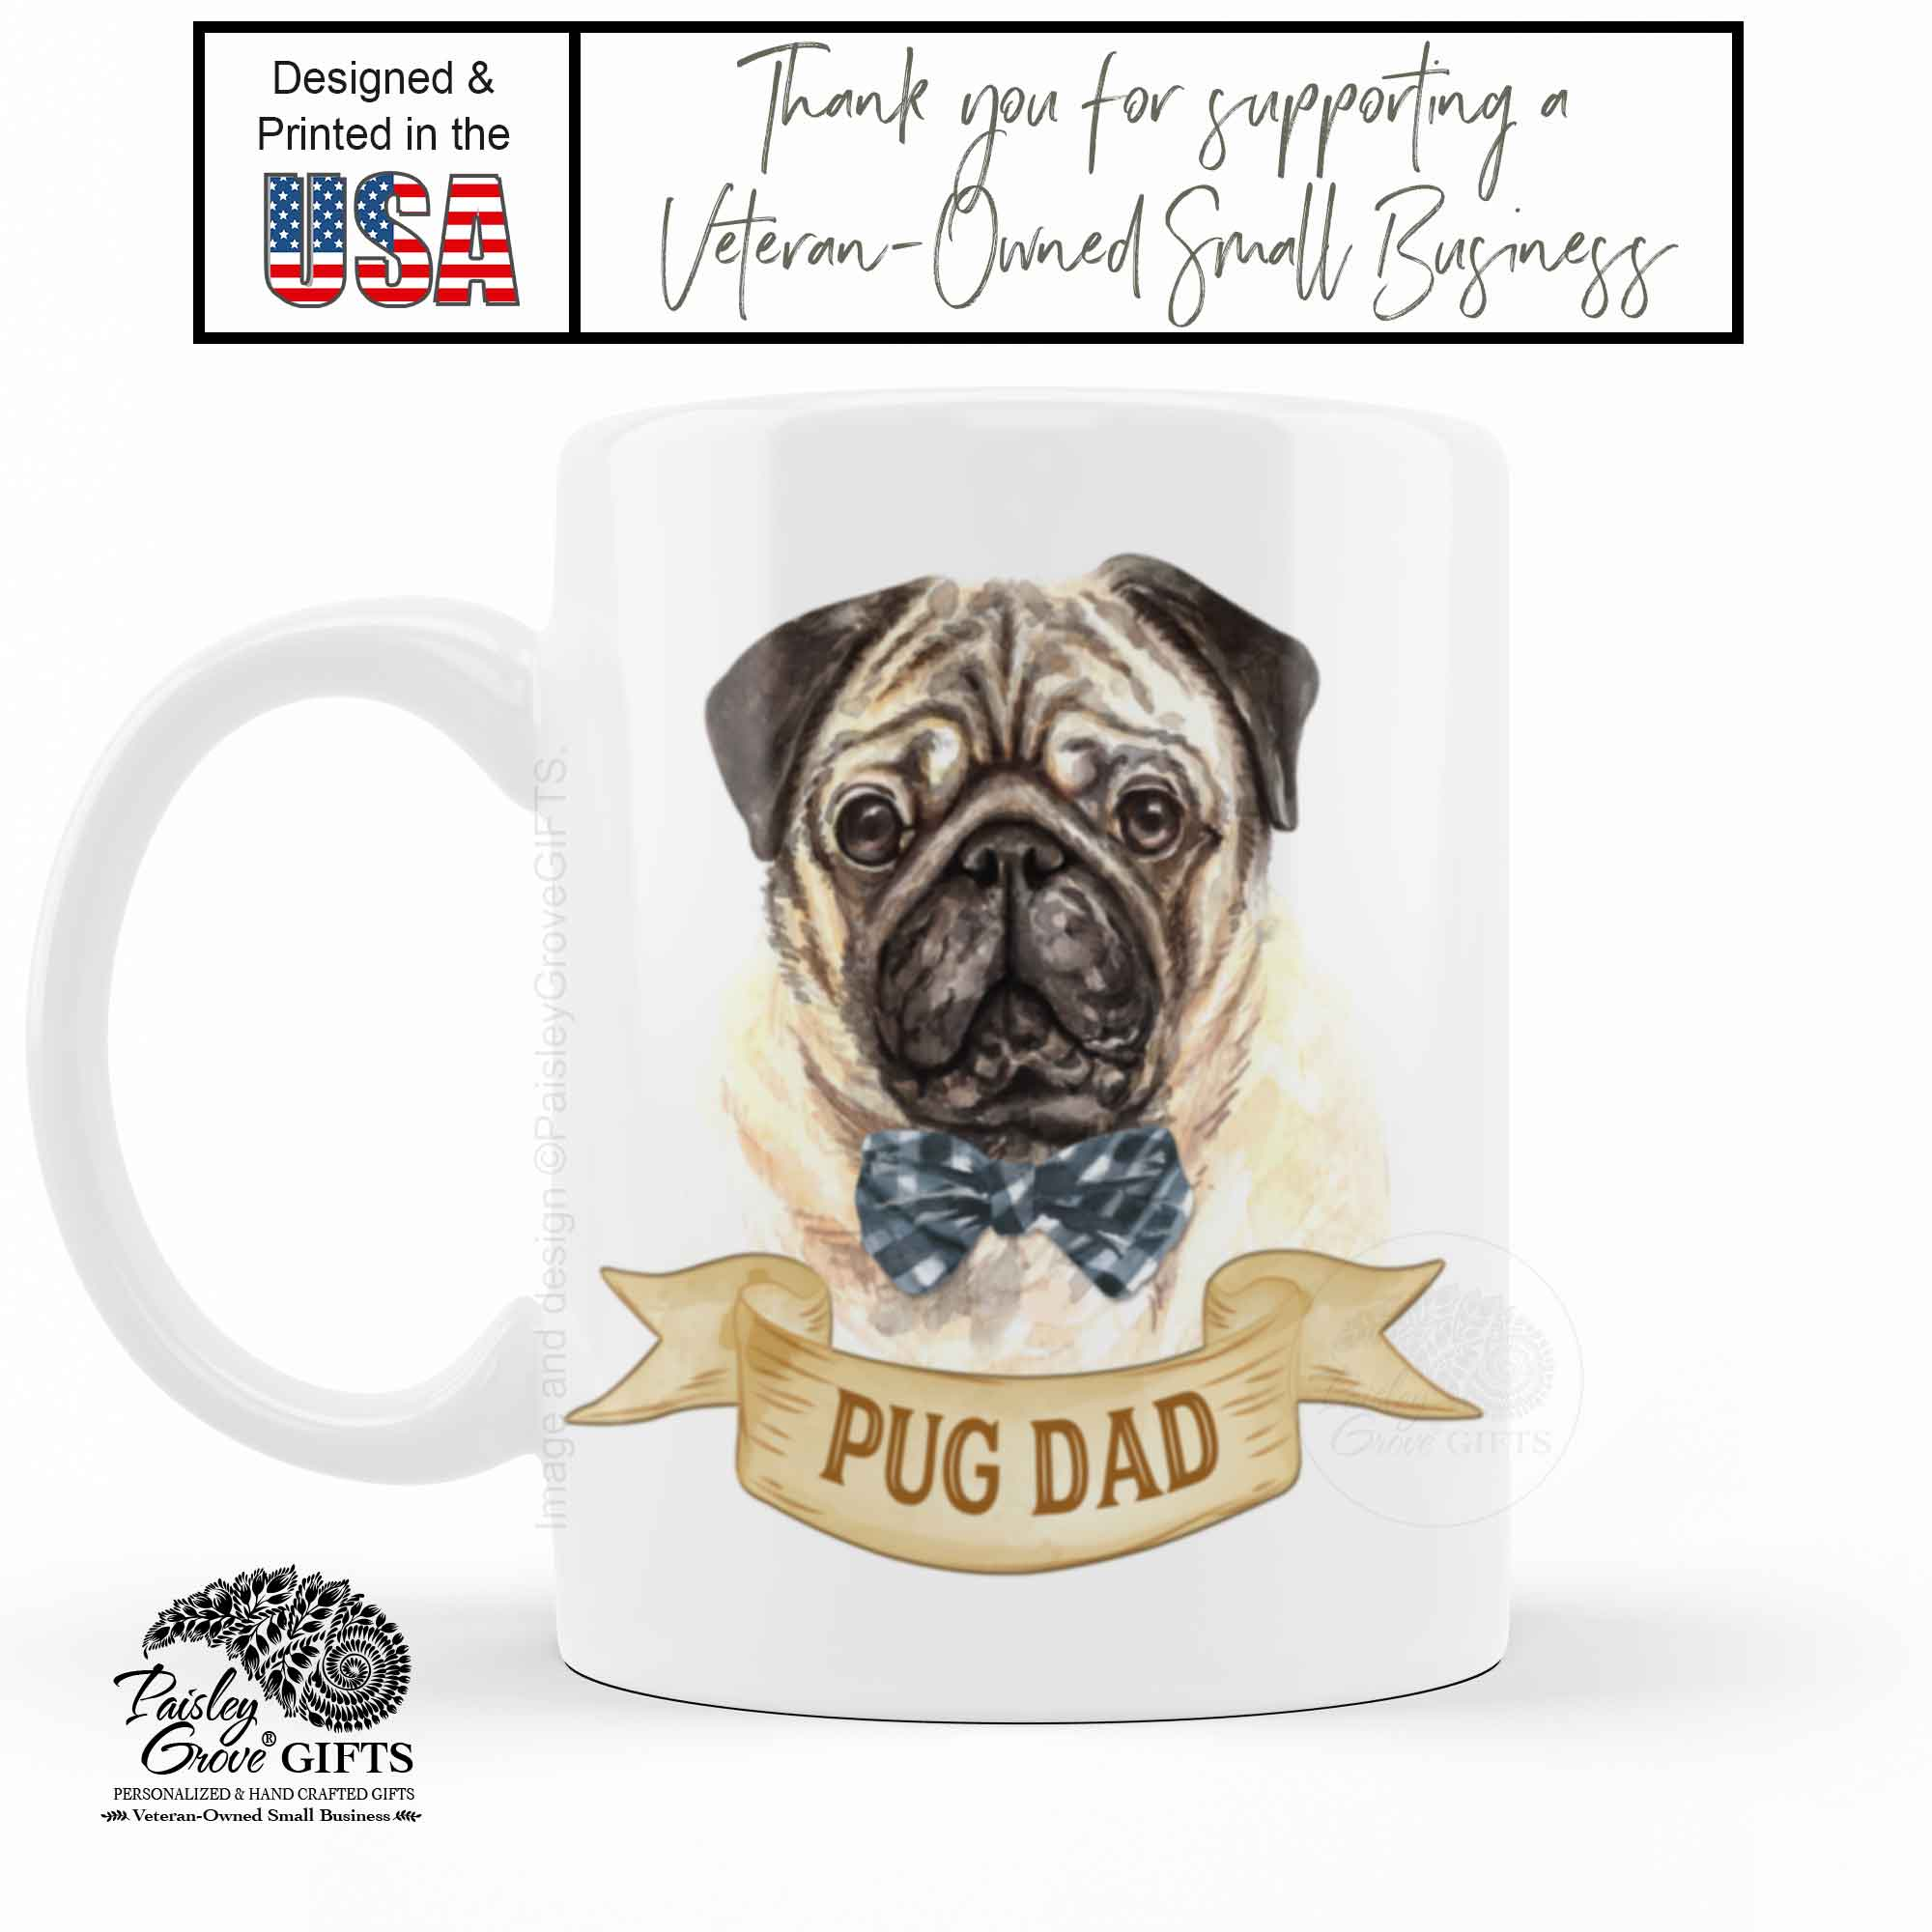 CopyrightPaisleyGroveGIFTS P009c3 Pug dad coffee cup with cute pug in bow tie is printed in the usa